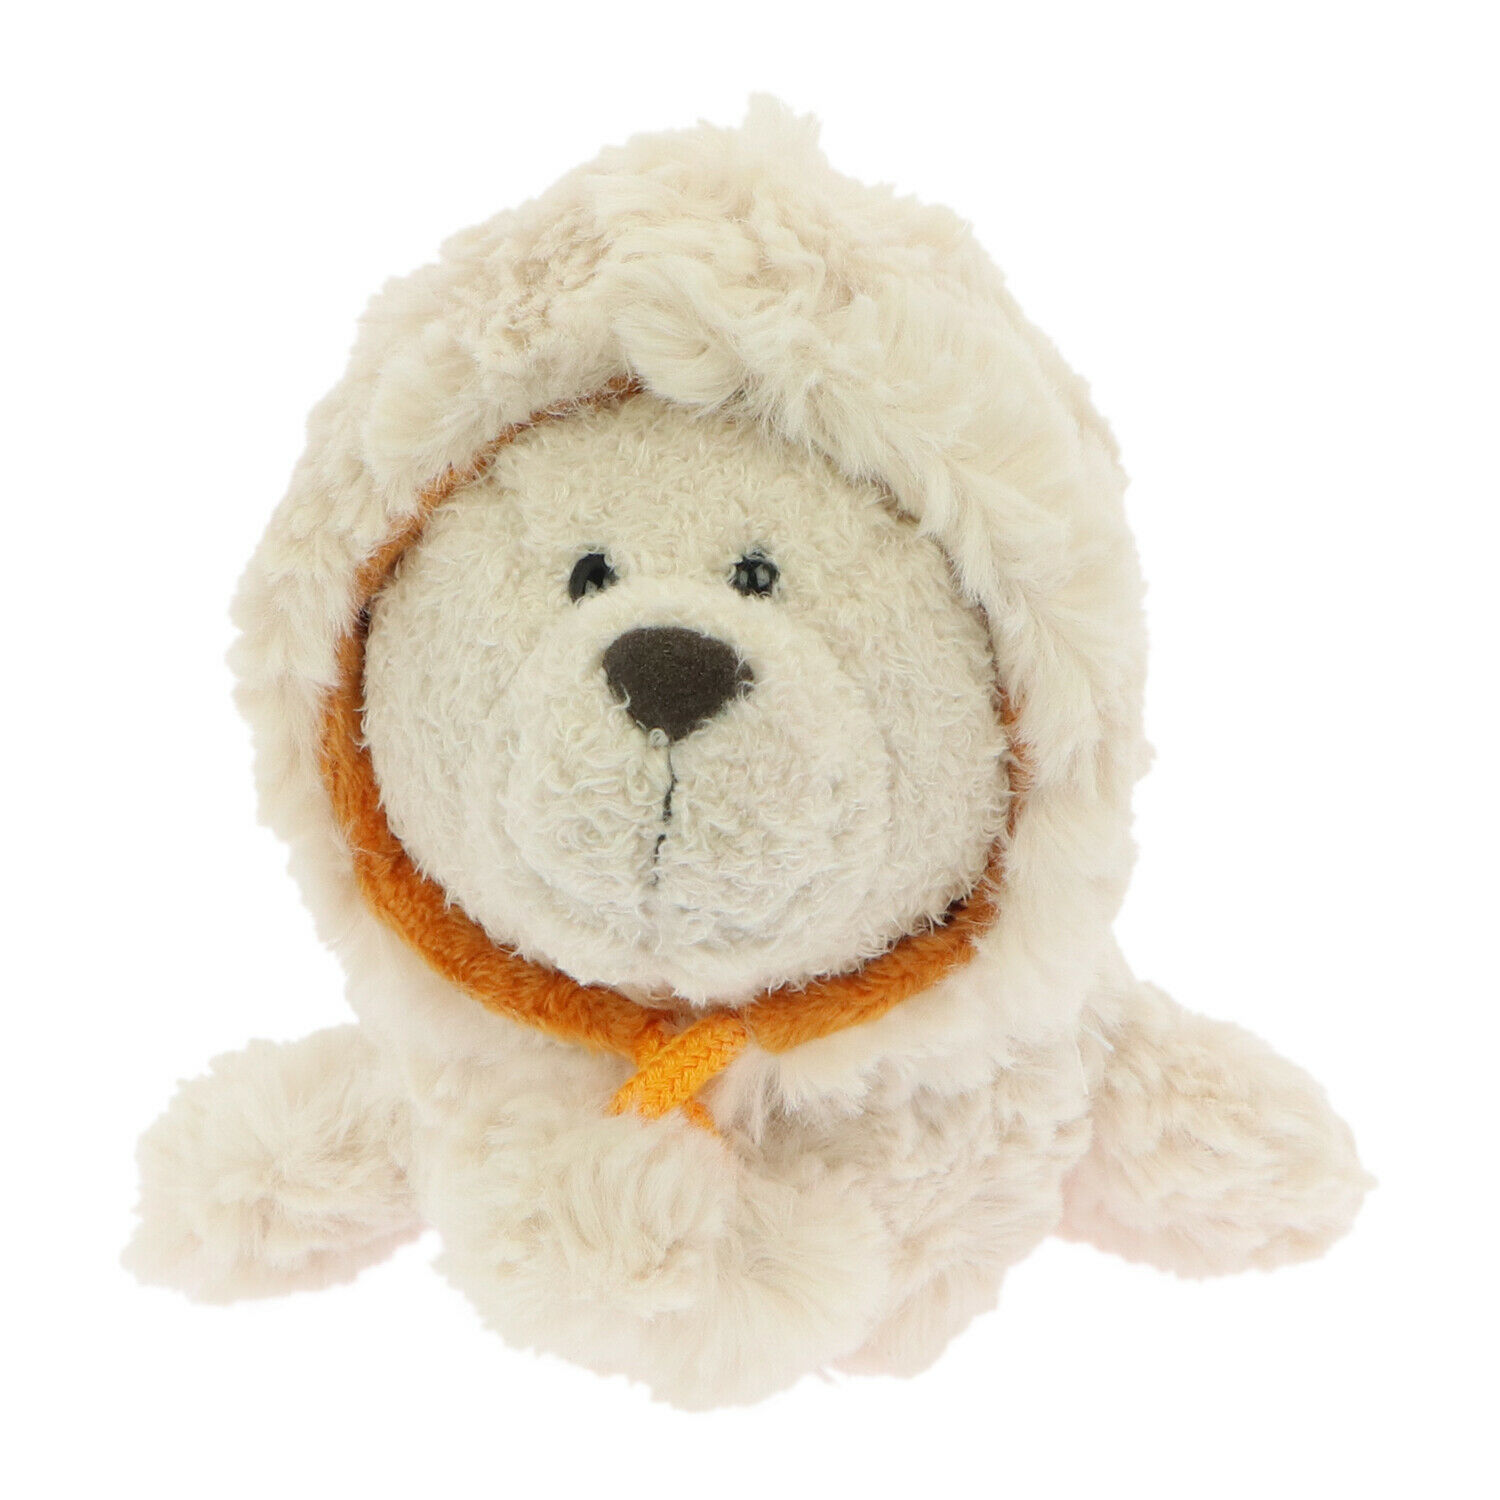 Primary image for NICI Seal Cozylou Beige with Hood Plush Toy 8 inches 20 cm